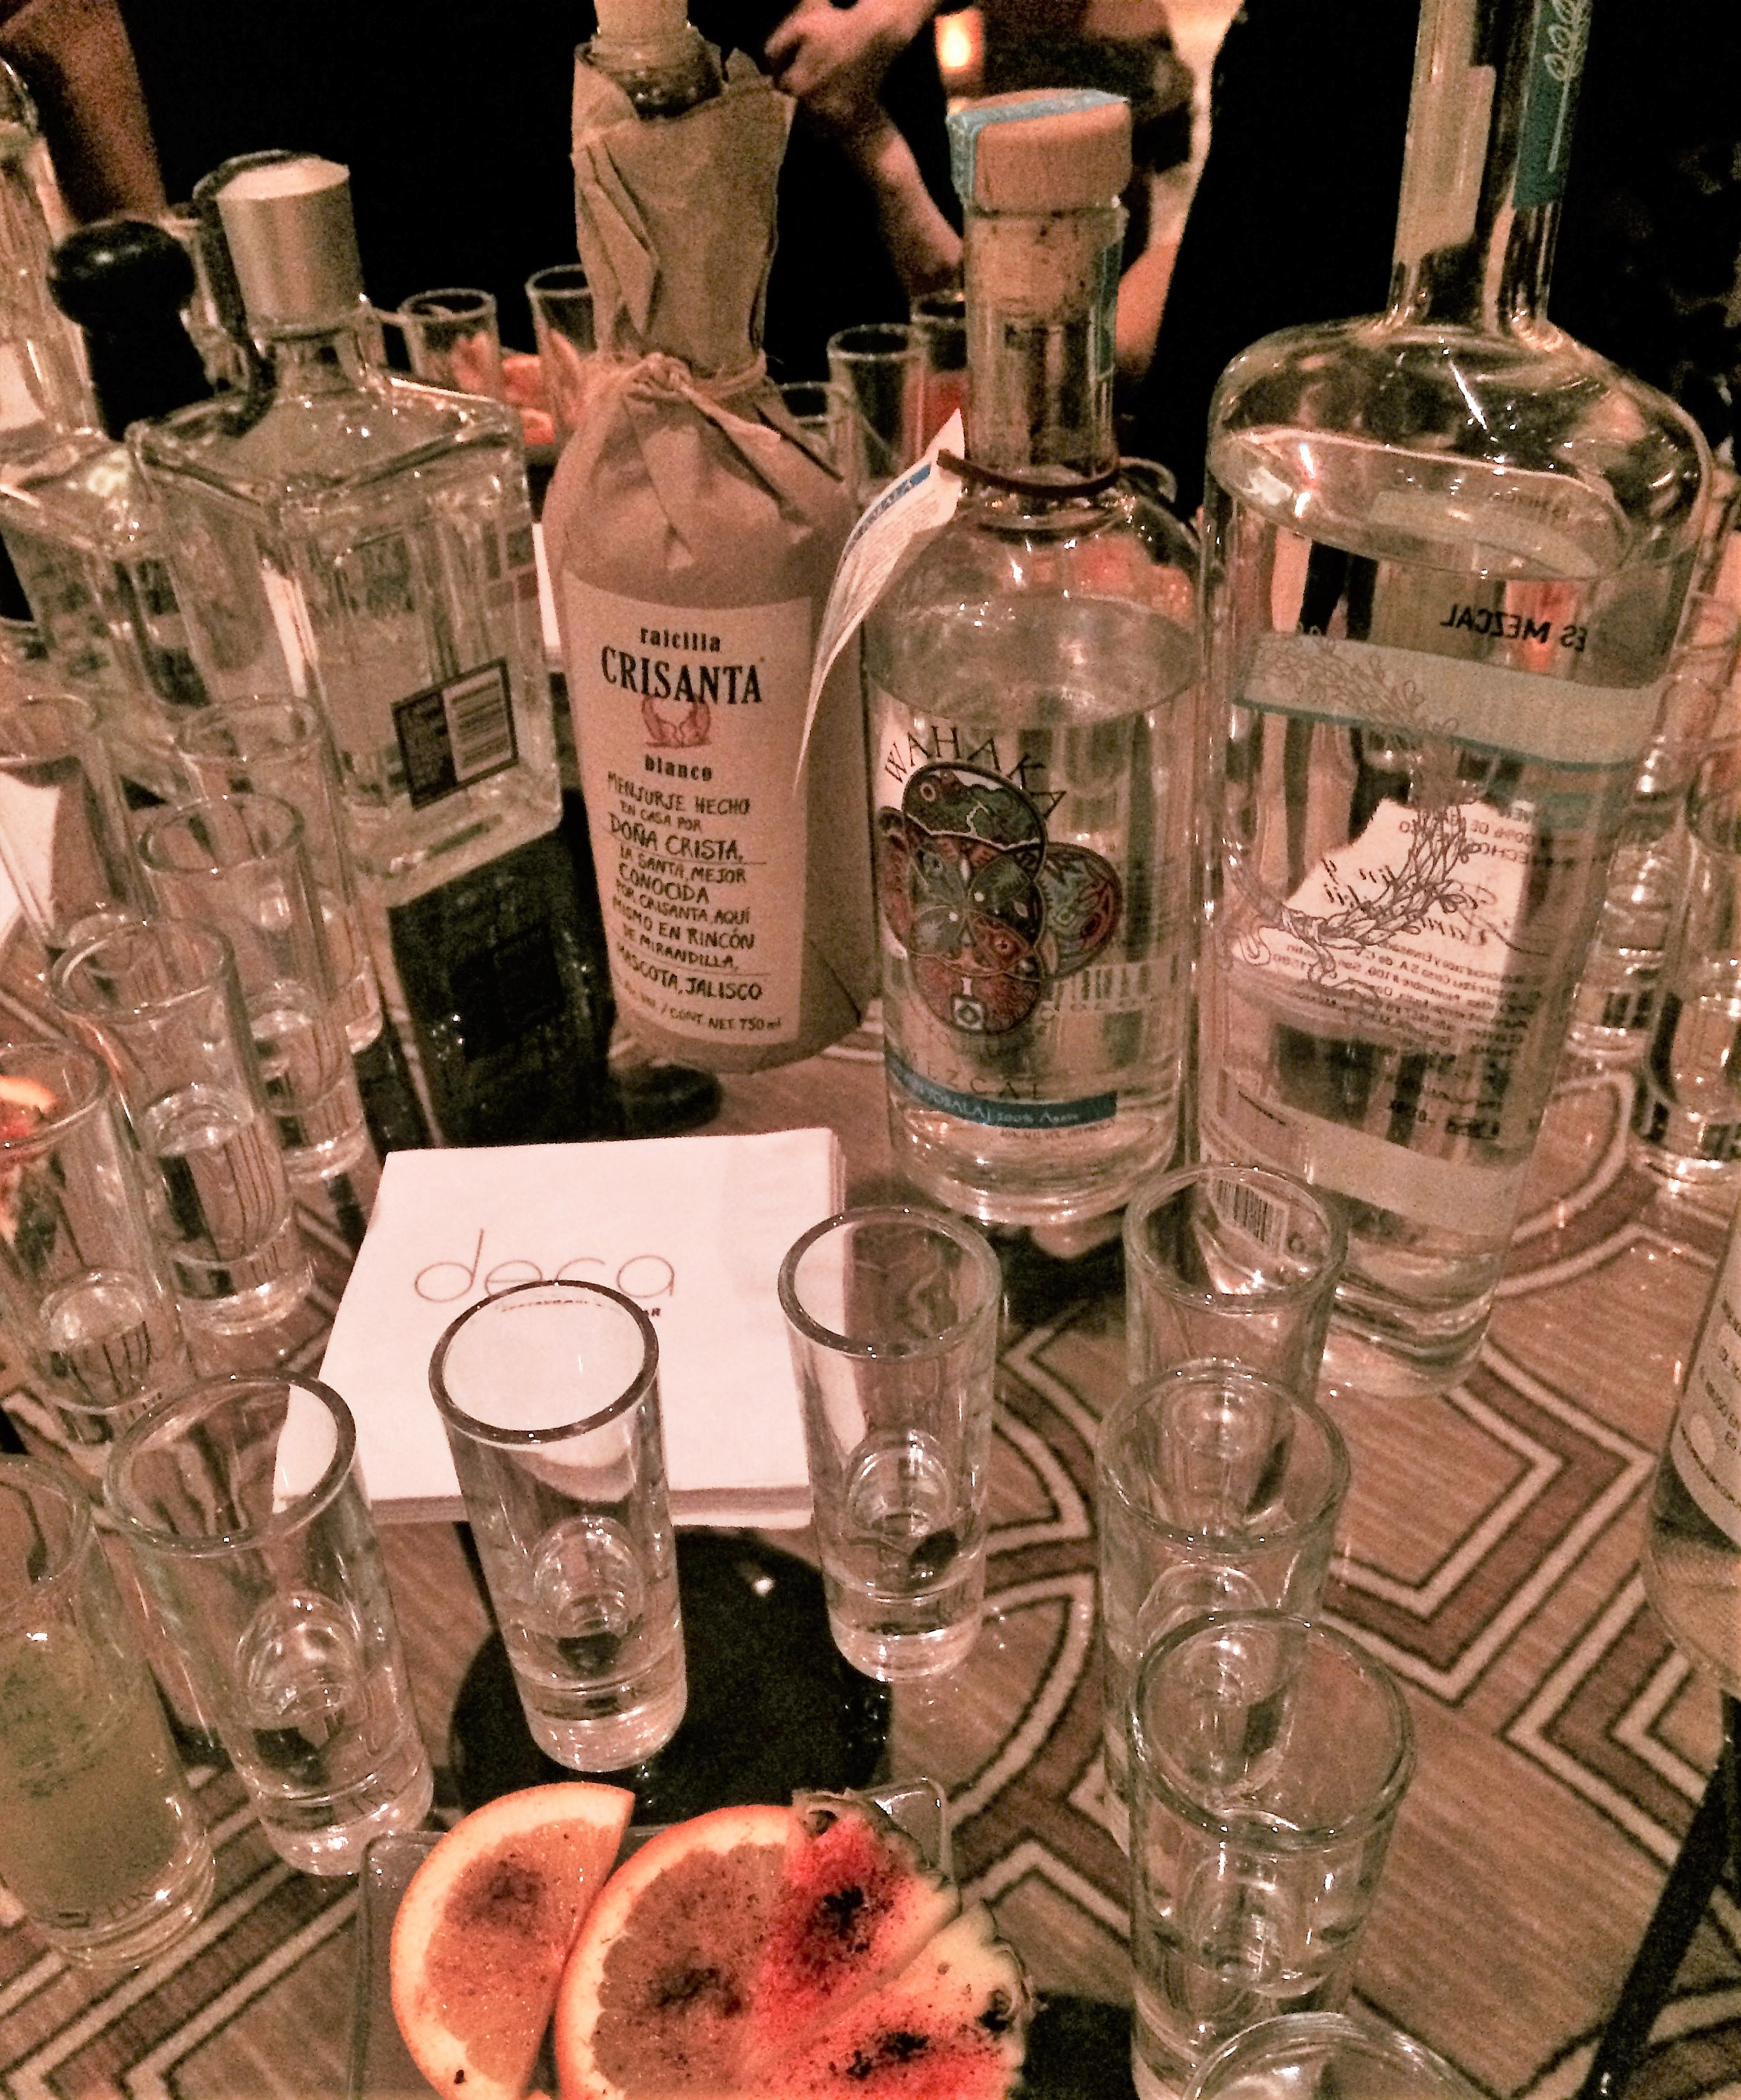 A tabletop assortment of tequila bottles, shot glasses and a plate of orange slices